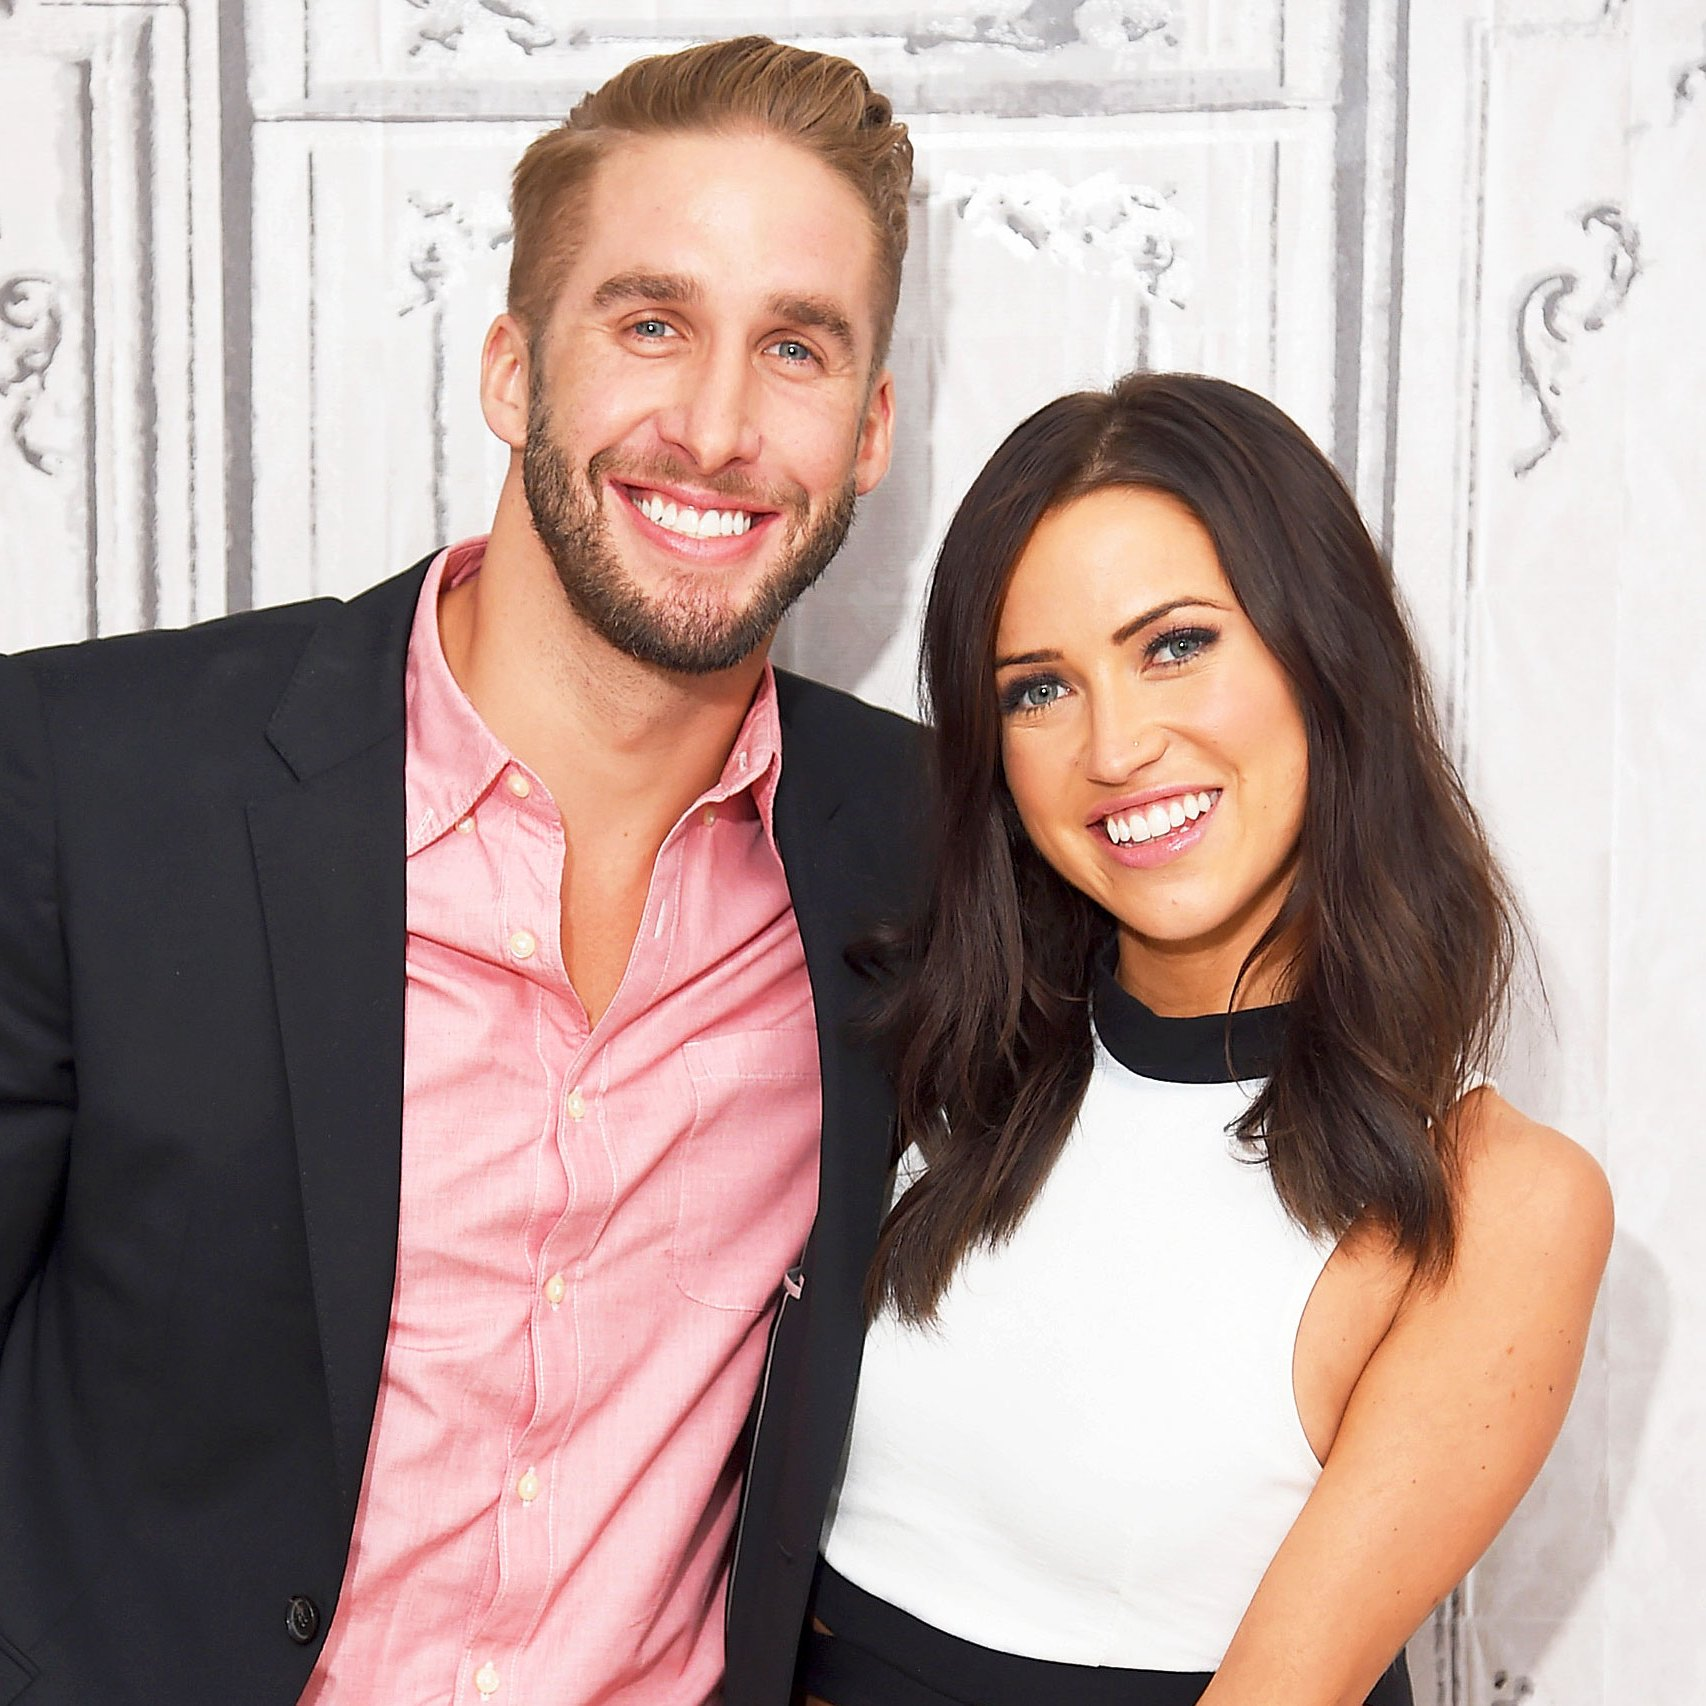 """Shawn Booth and Kaitlyn Bristowe attend the AOL BUILD Speaker Series presentation of """"After the Final Rose"""" on July 29, 2015 in New York City."""